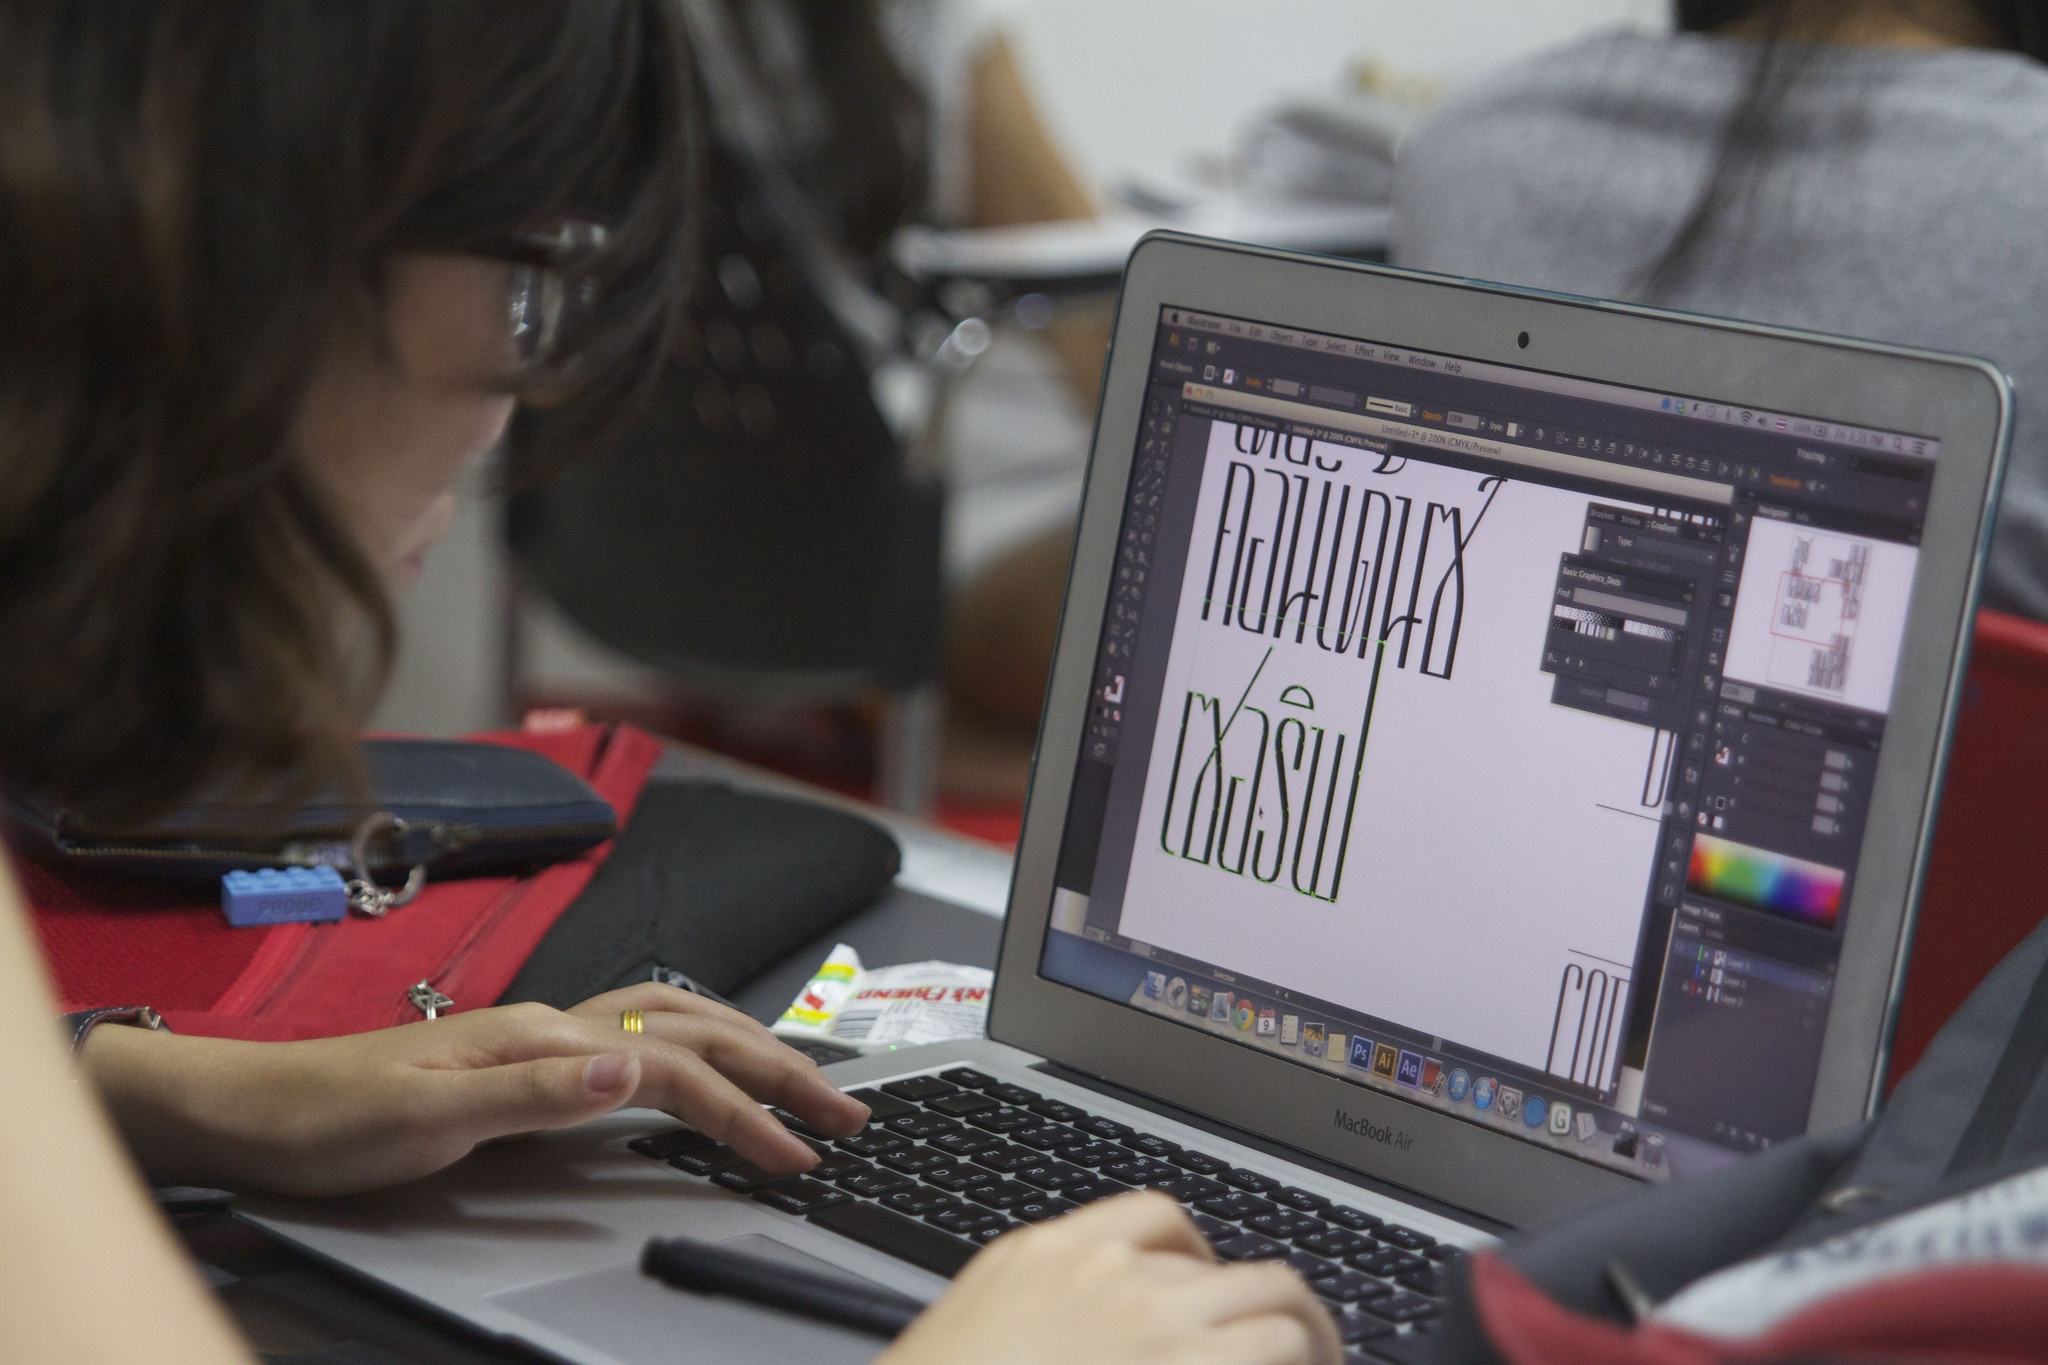 Some students even managed to find time to design Thai typefaces from scratch!